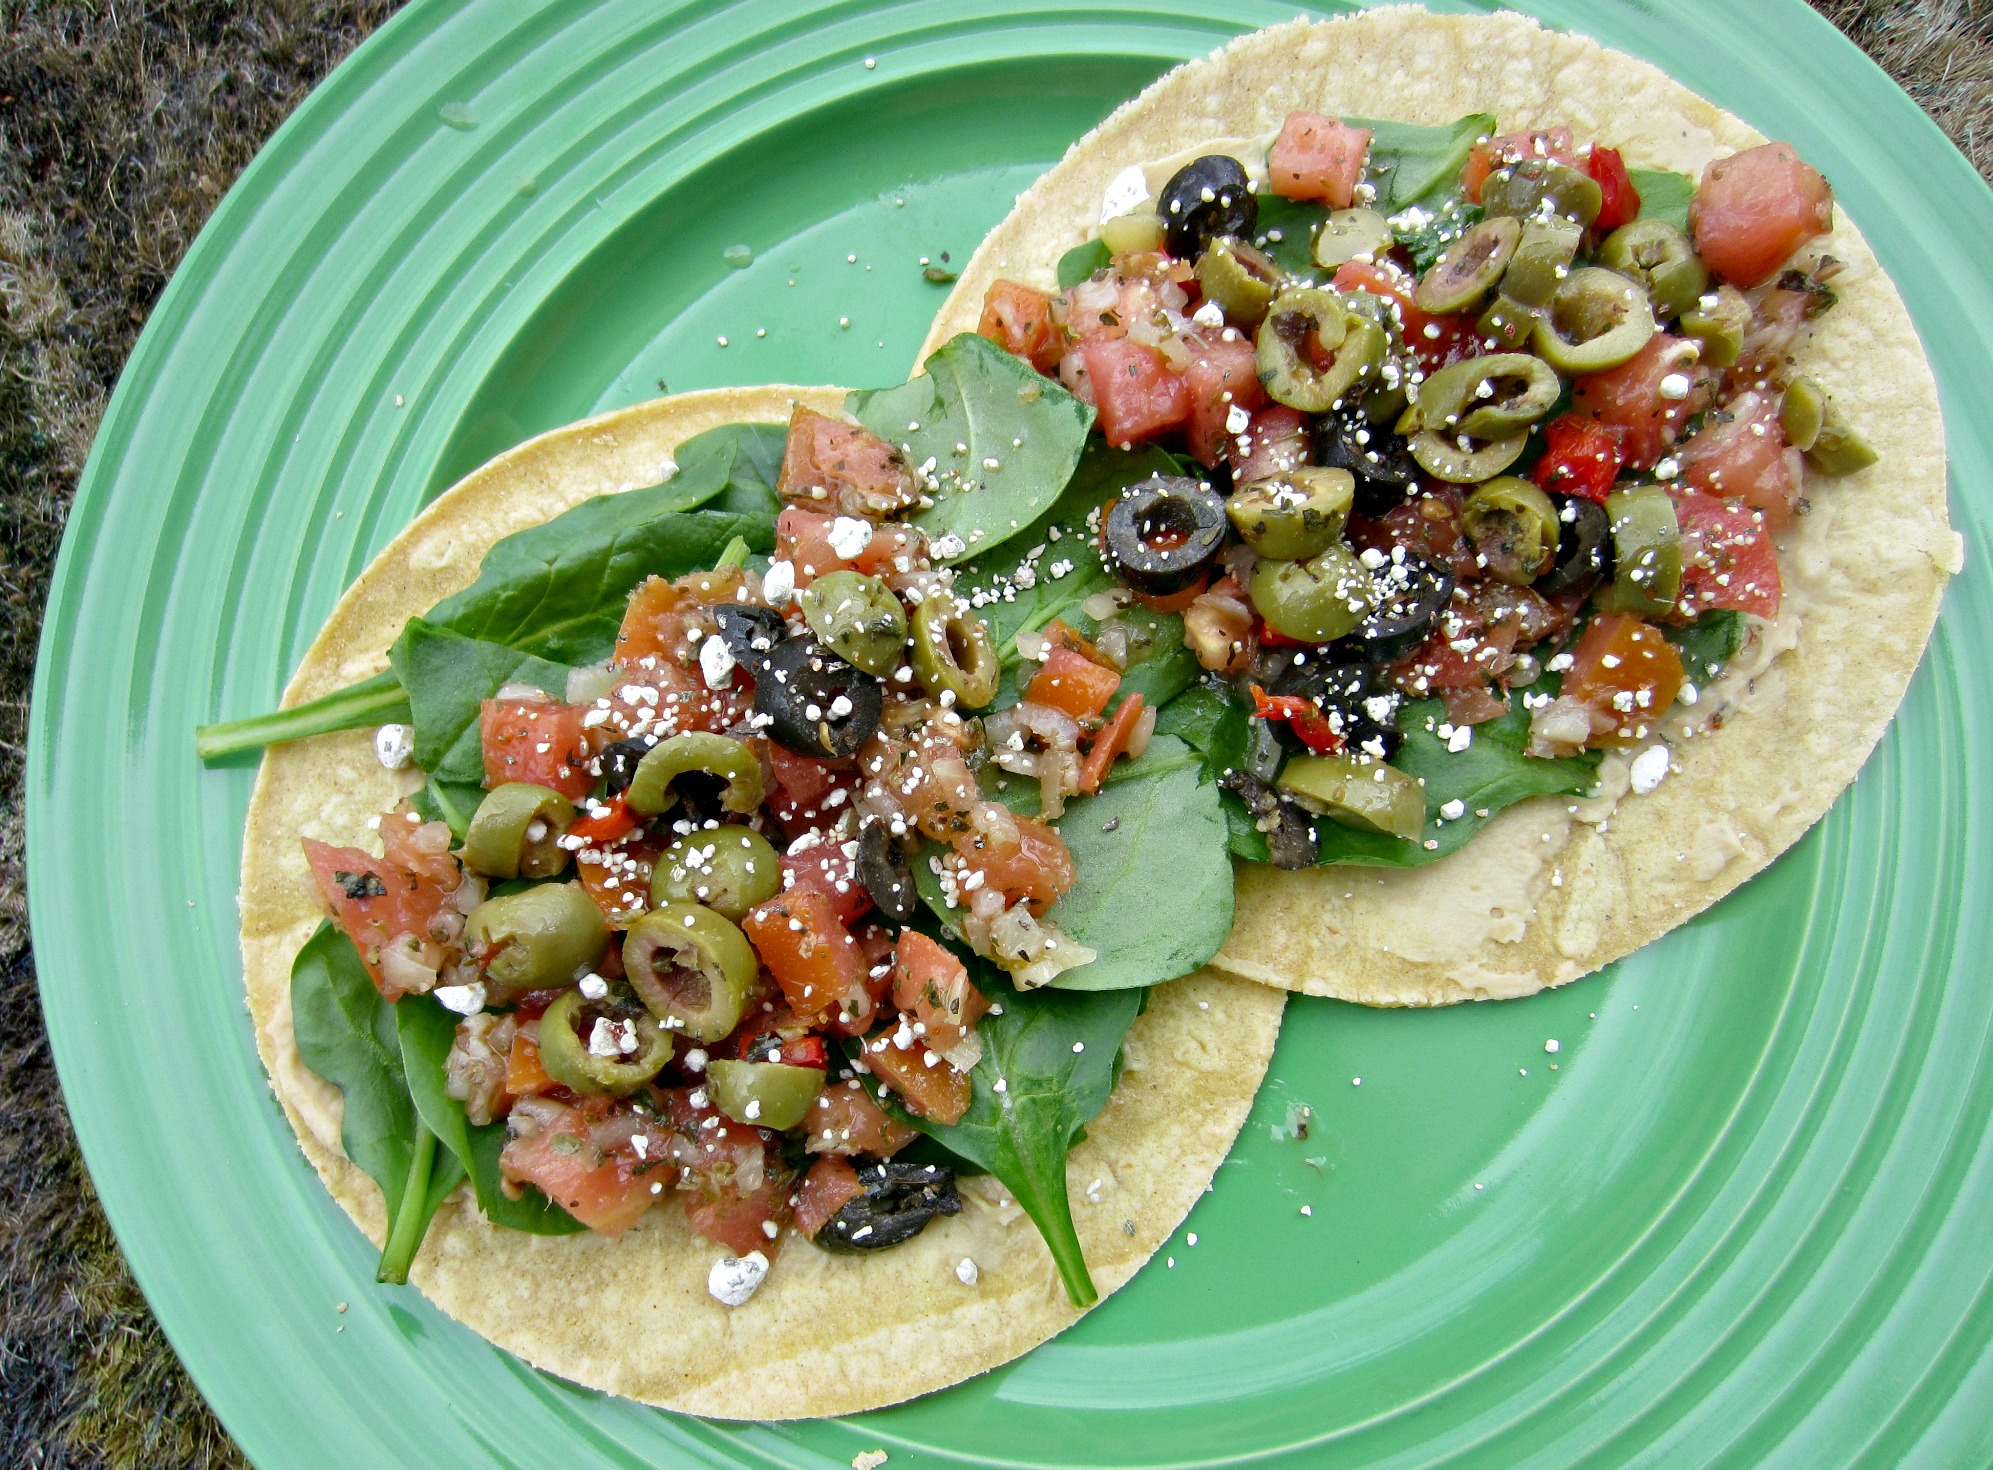 olive and mediterranean bruschetta with spinach on corn tortillas